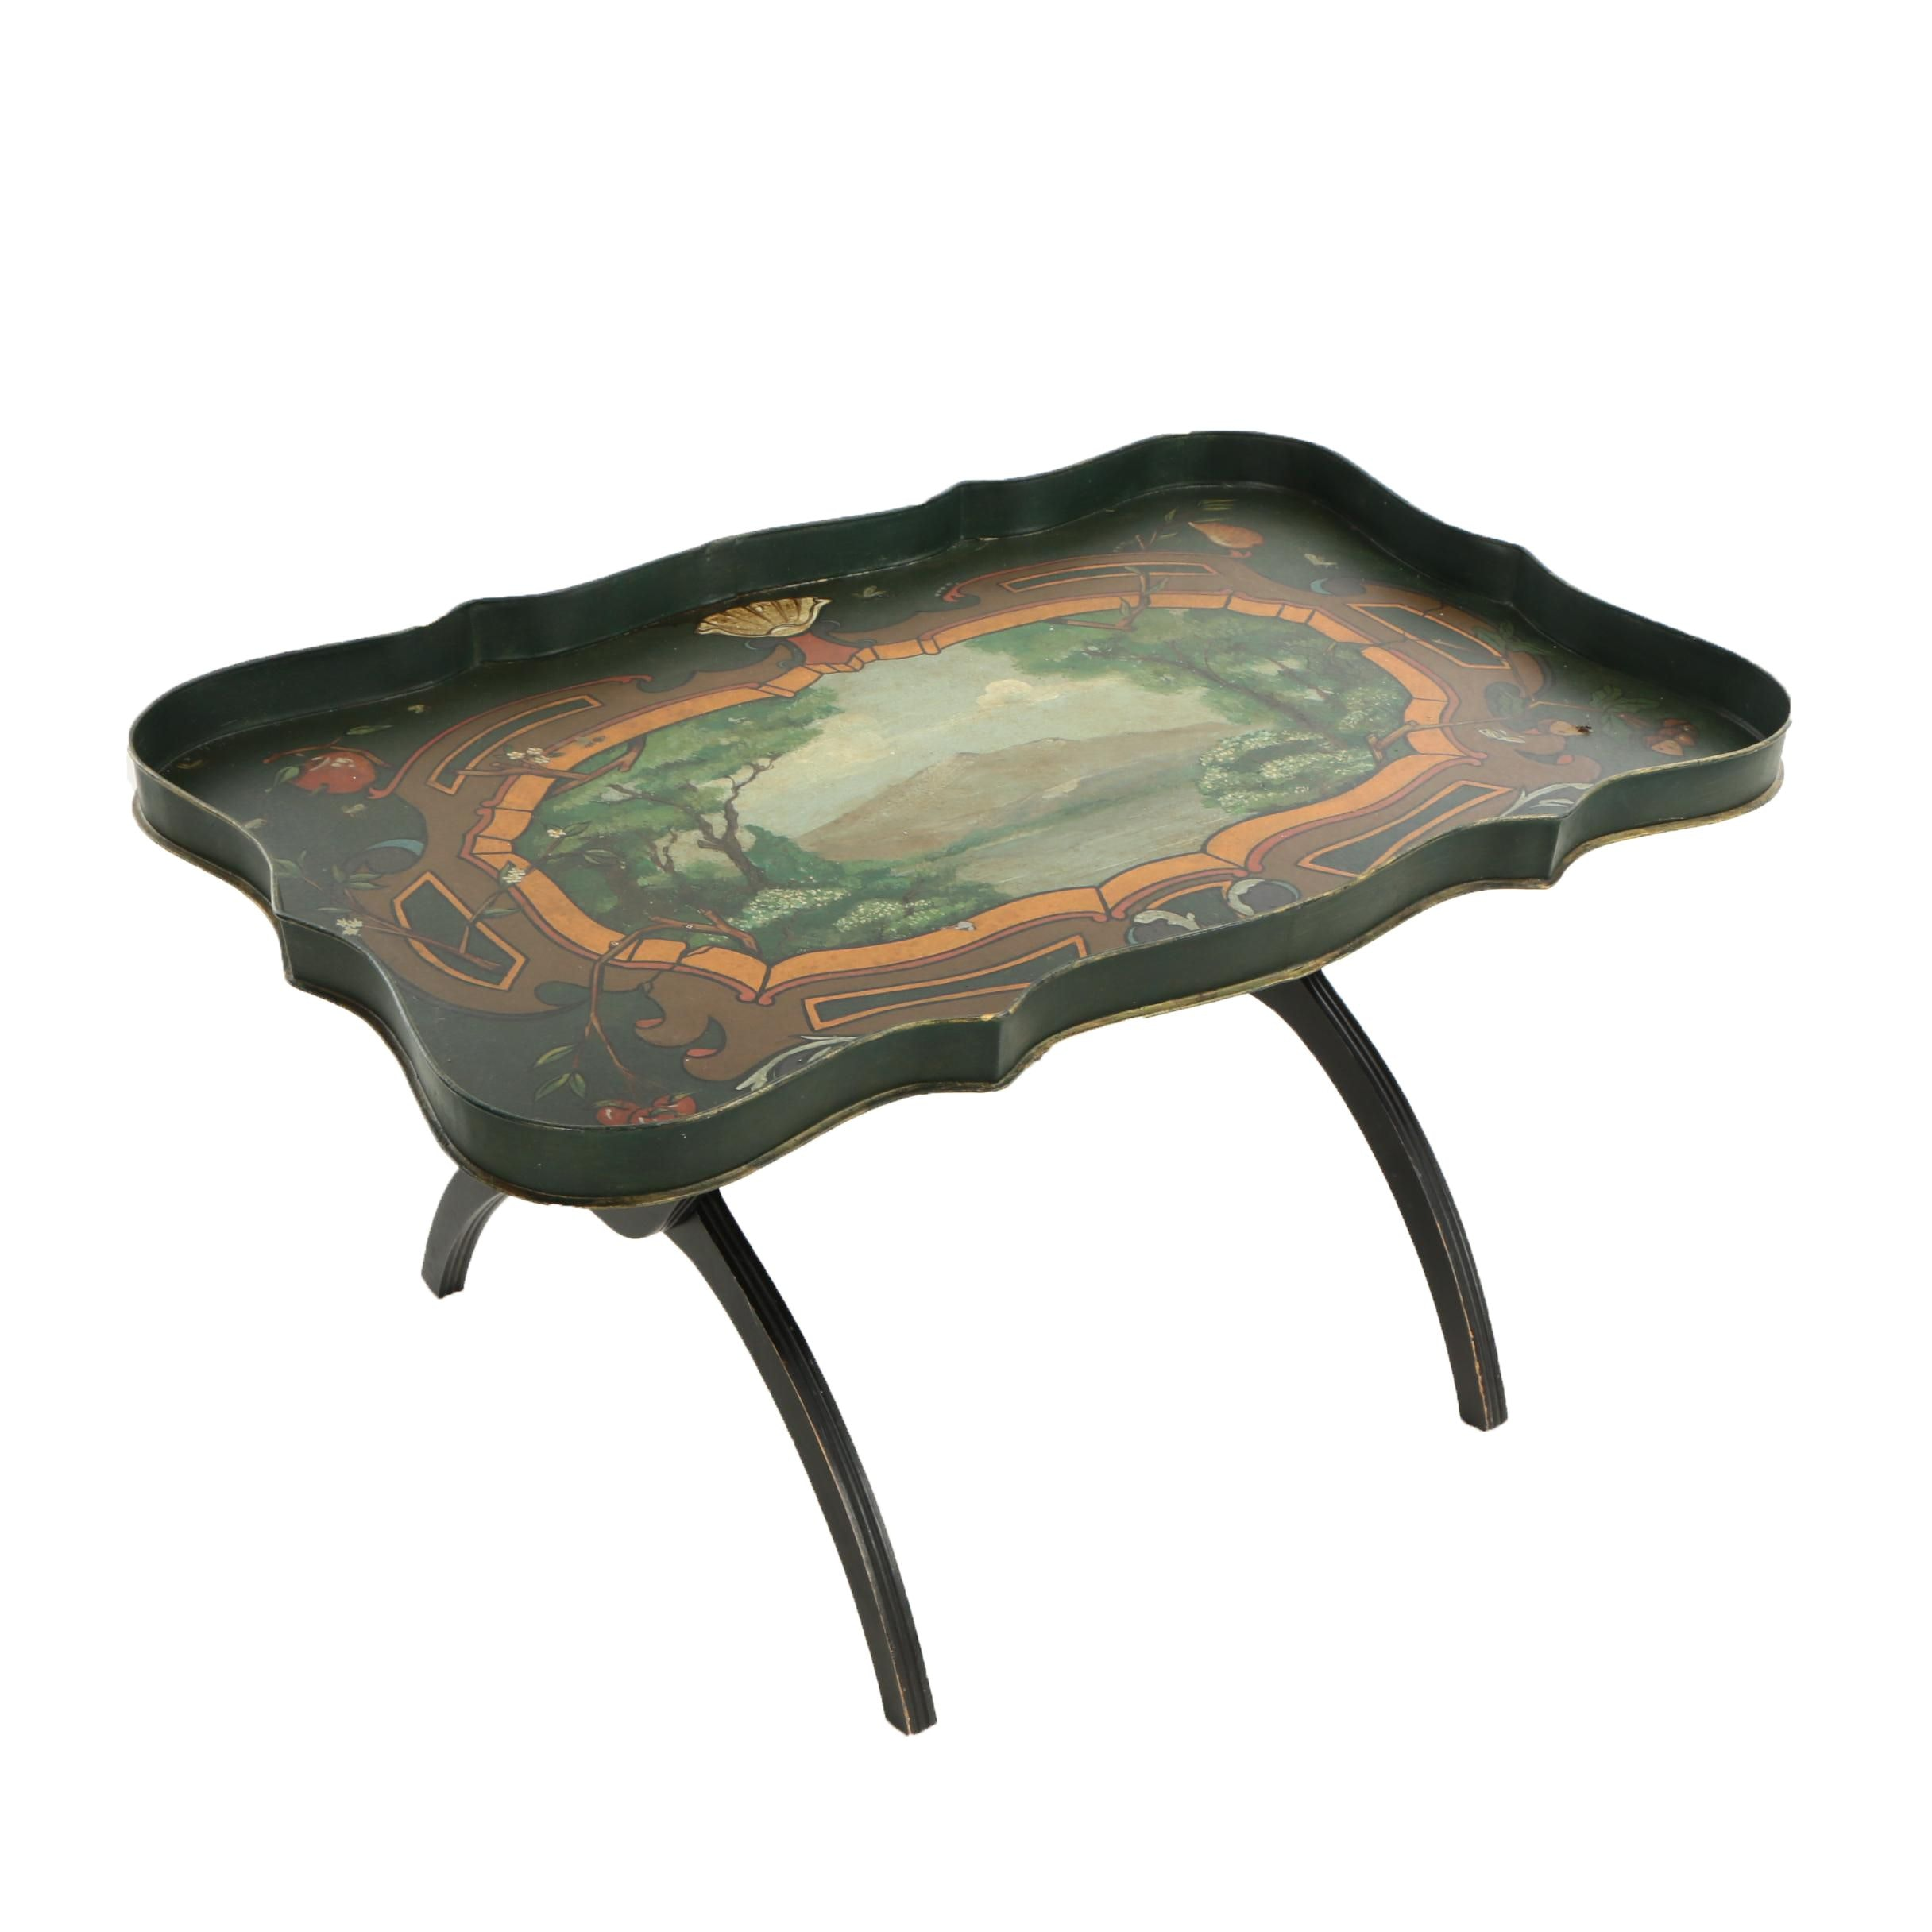 Tole Peinte Tray on Later Stand, 19th Century and Later